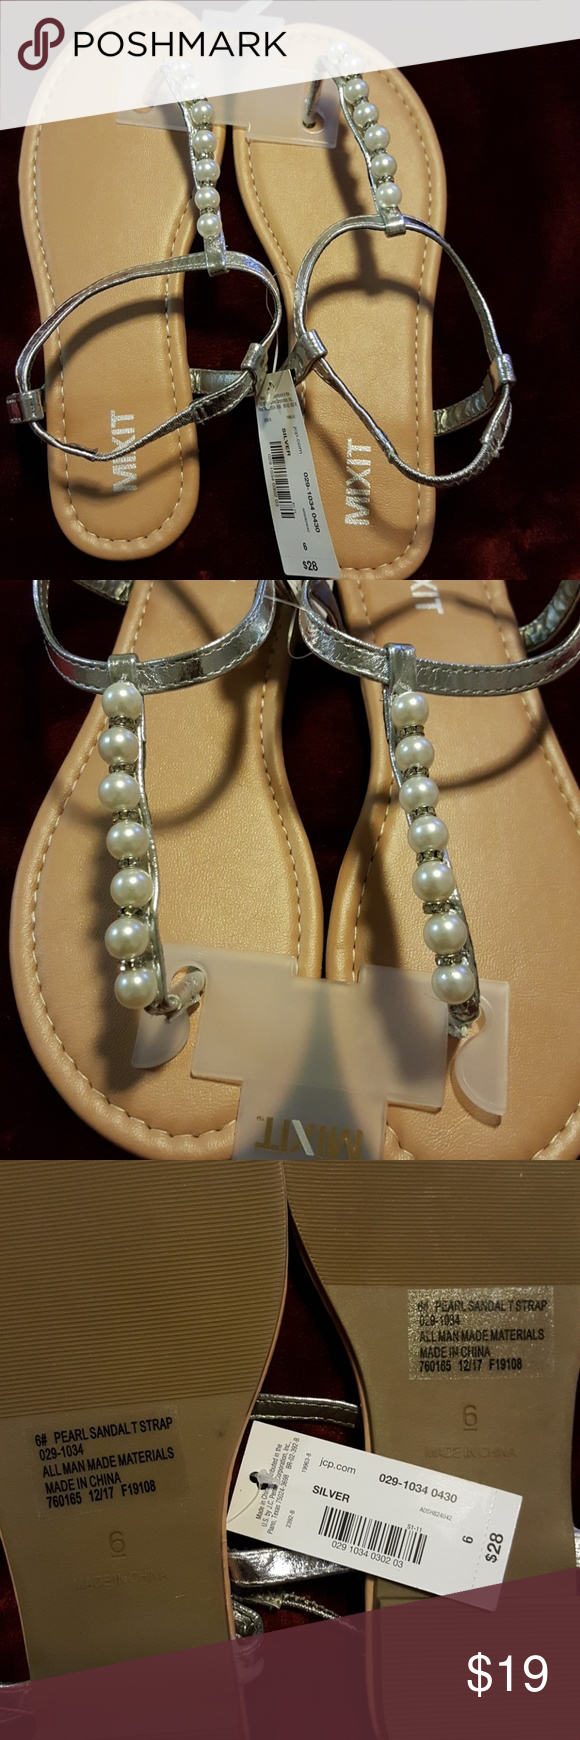 45611d97e91ac Mixit Silver sandals Silver sandals with gorgeous pearl strap with  rhinestones.